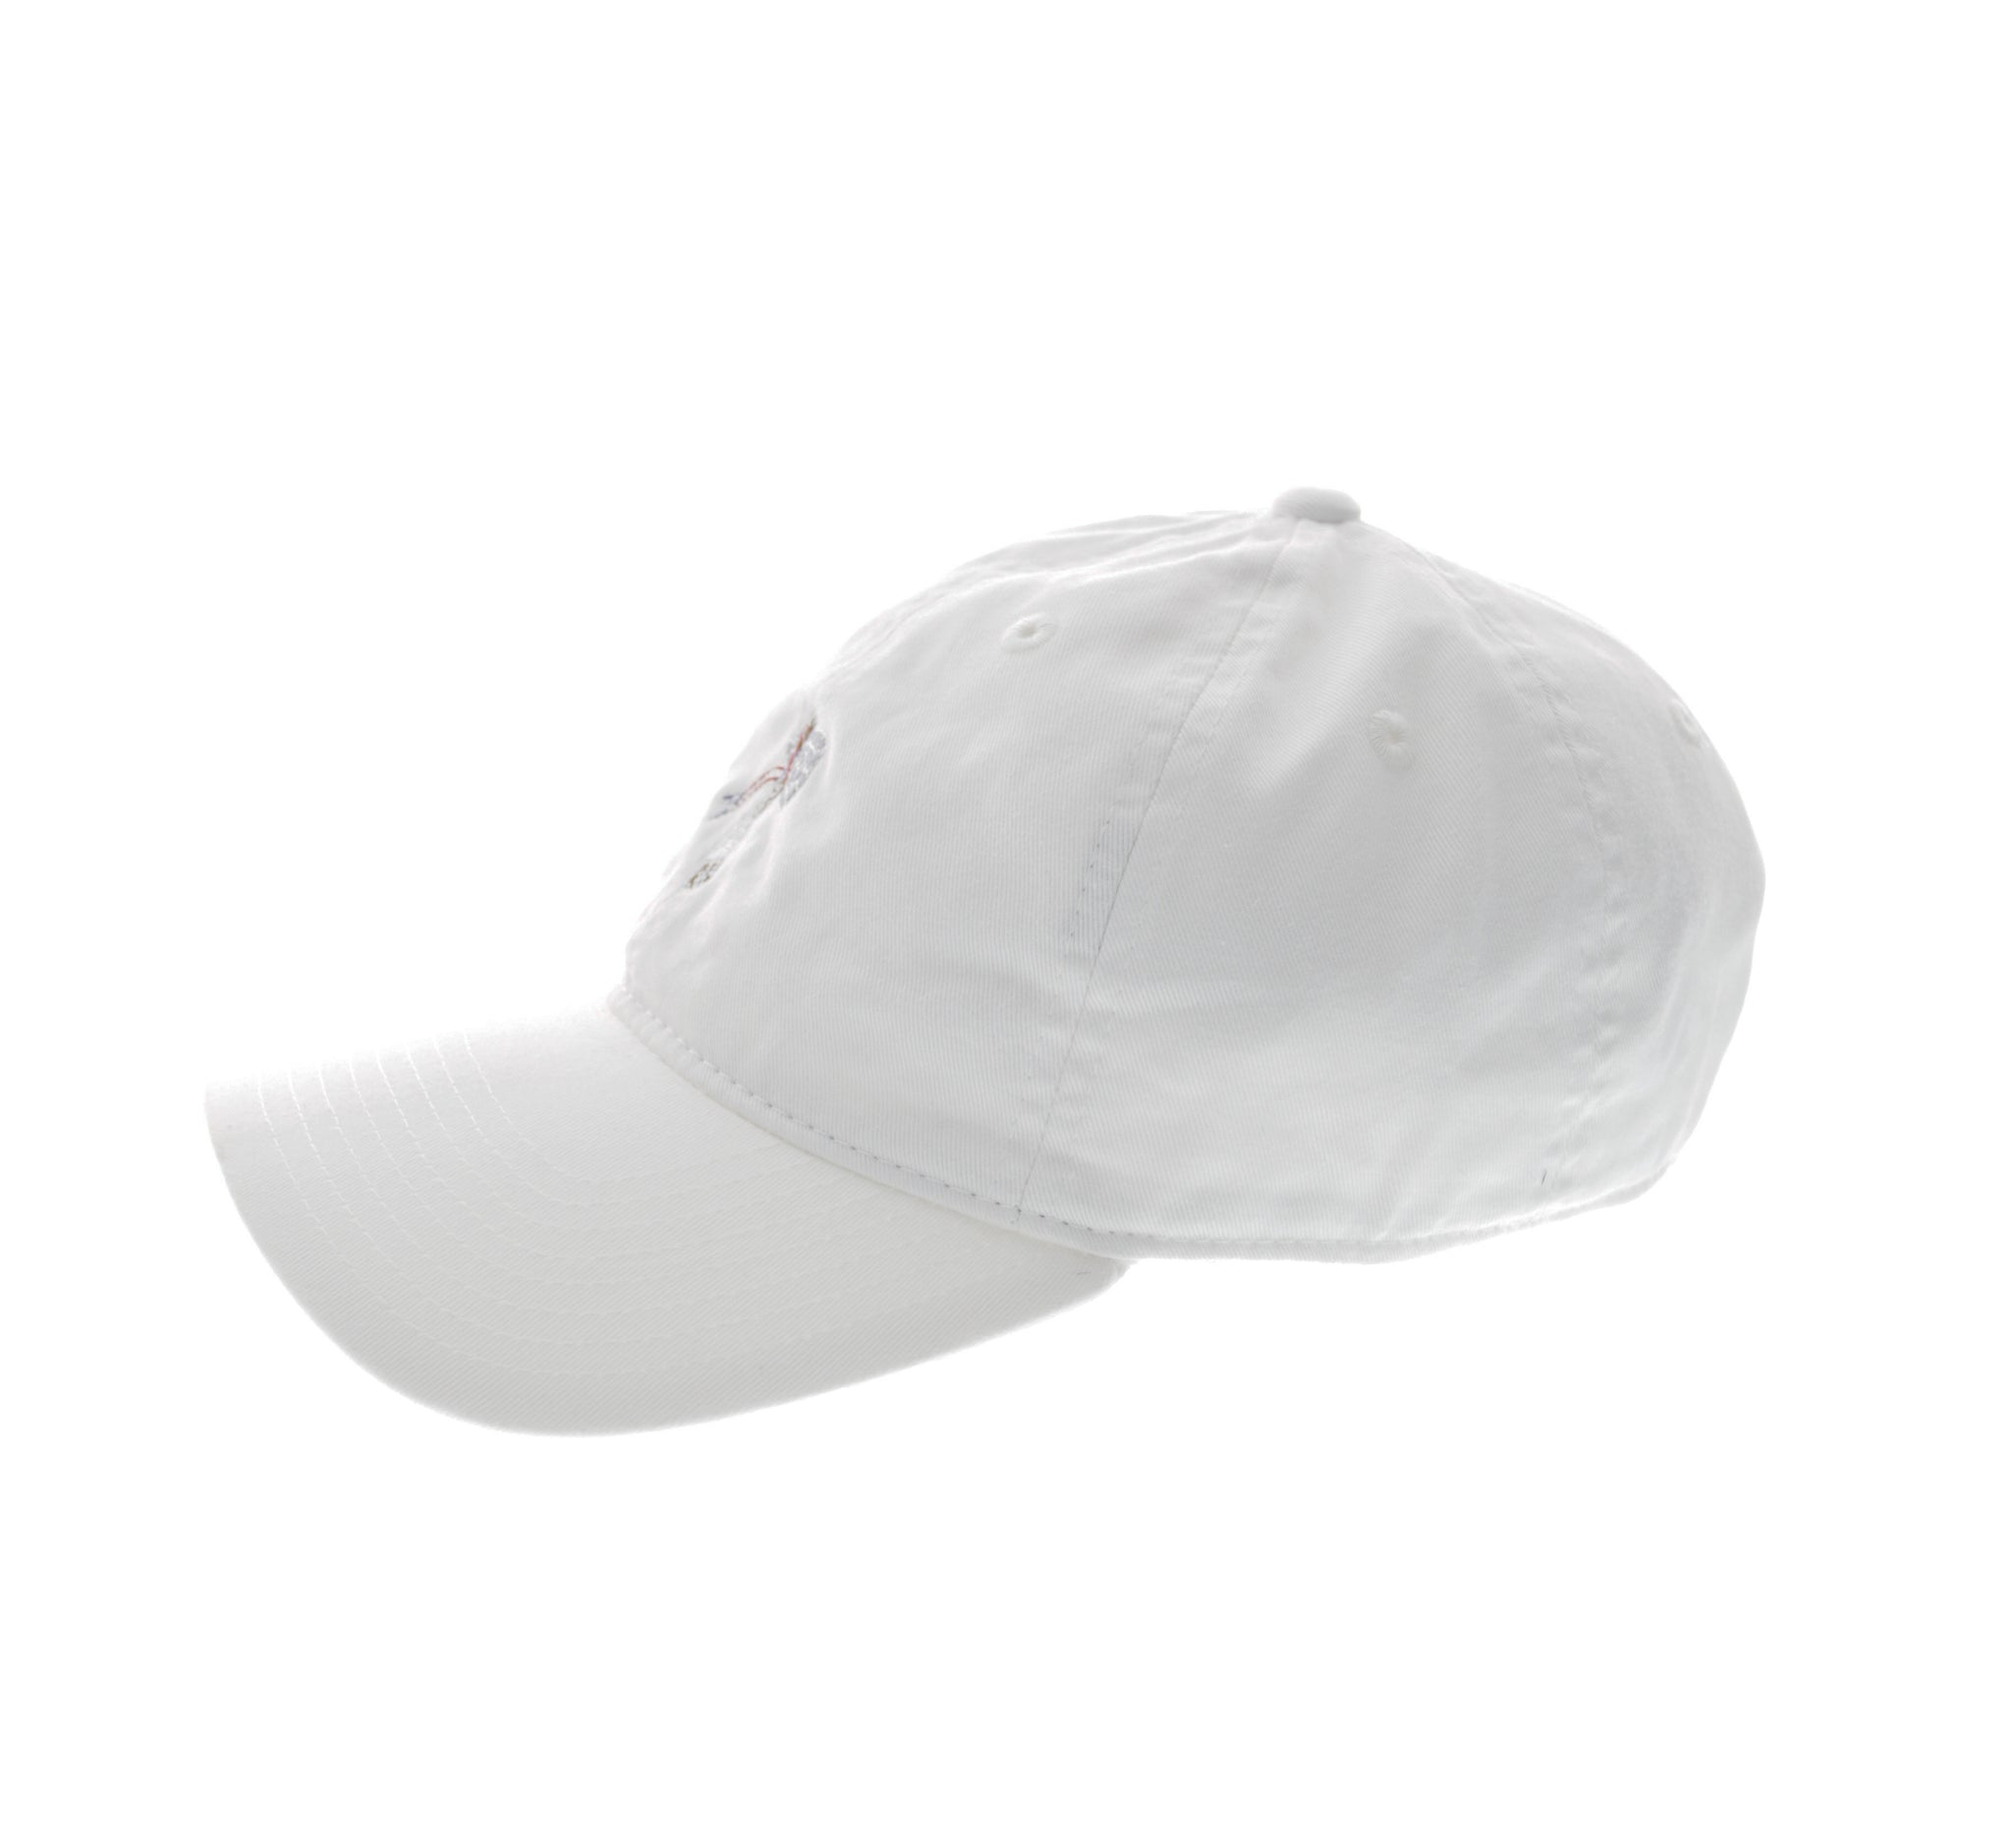 FREEDOM STRAPBACK - White